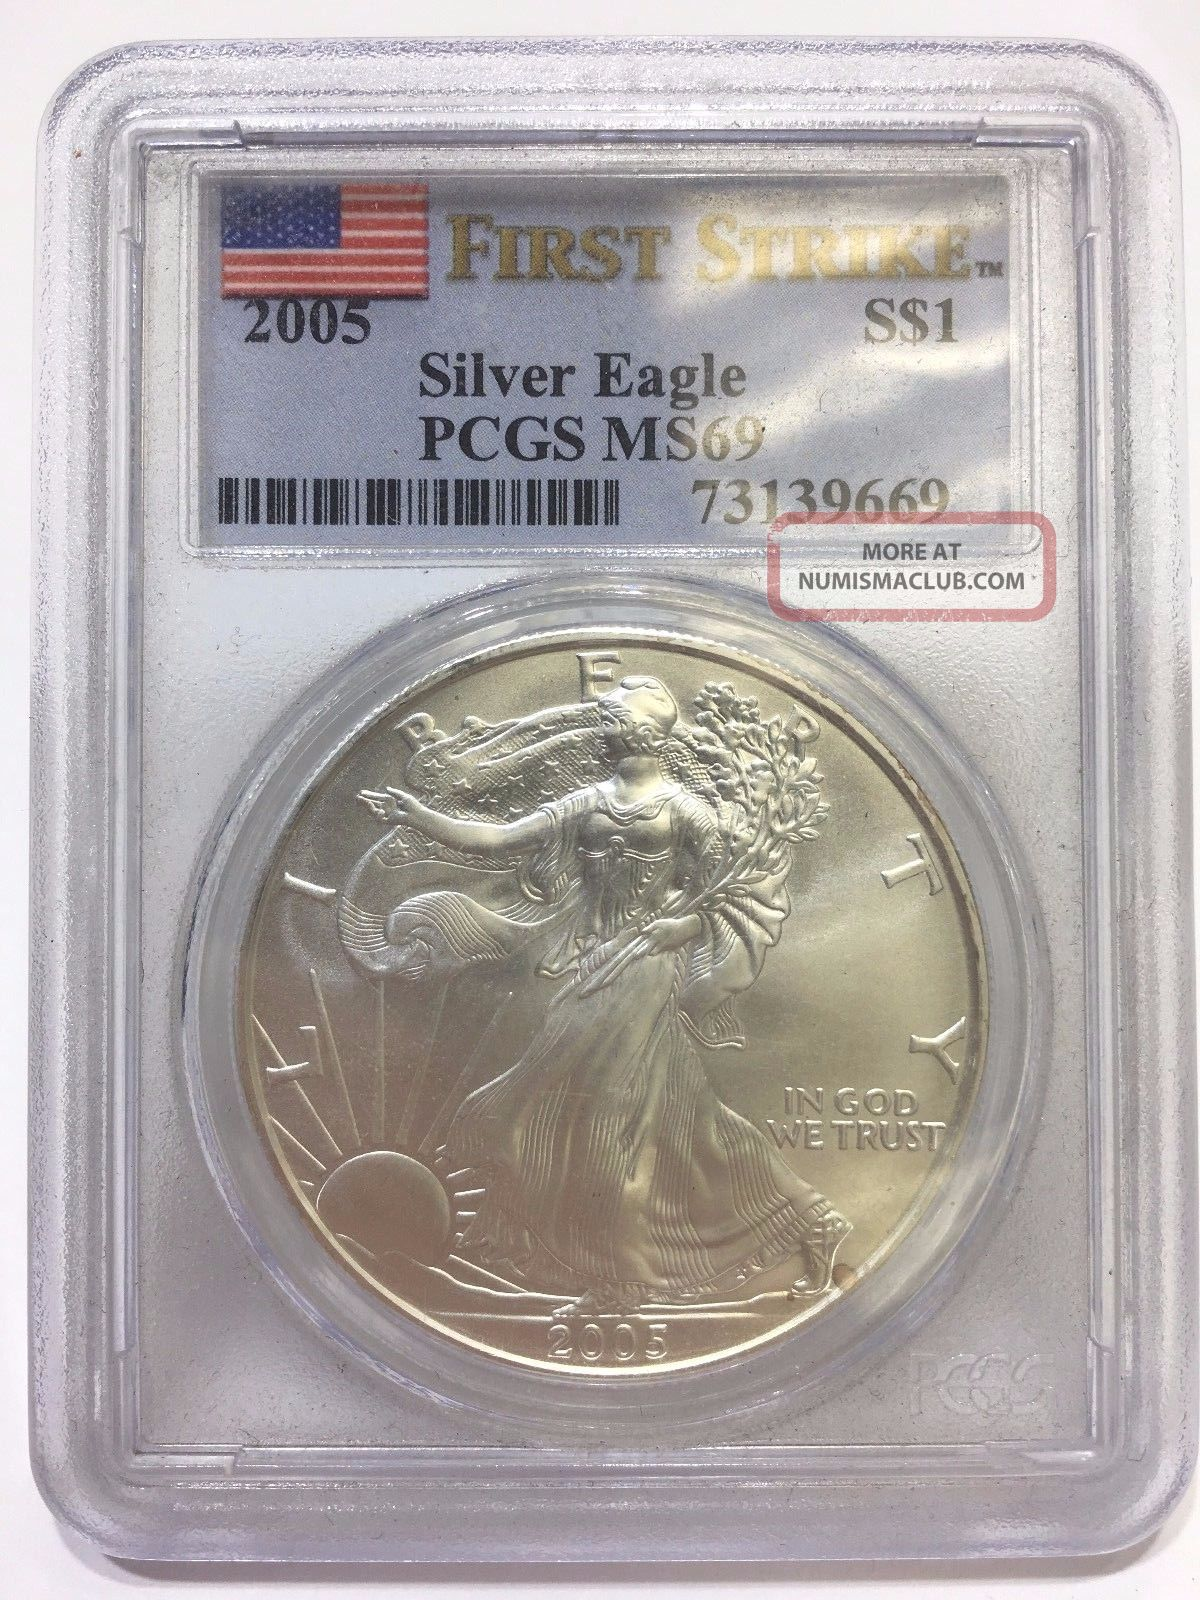 2005 Pcgs Ms 69 First Strike Silver American Eagle One